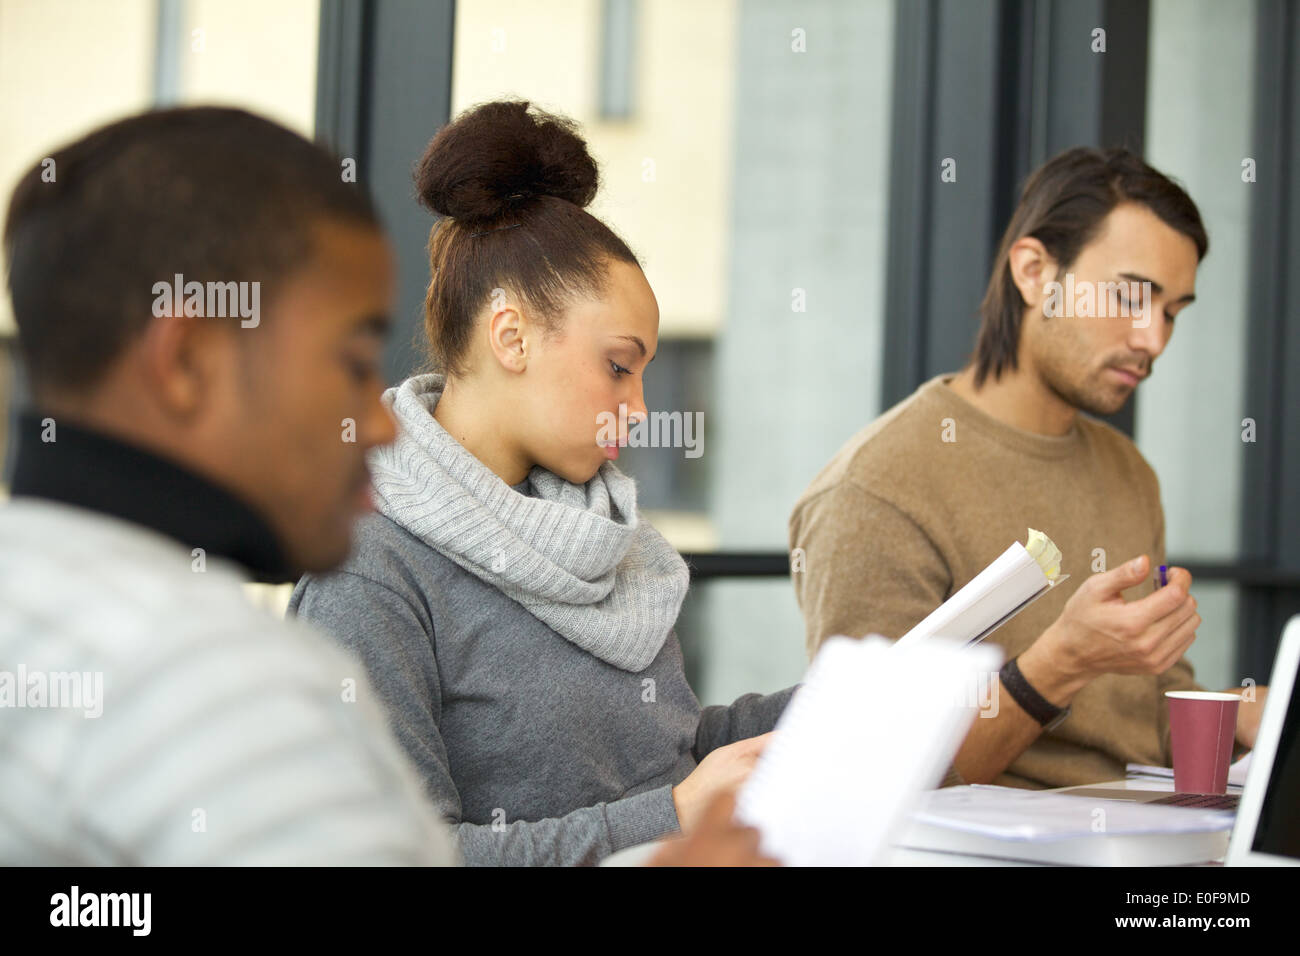 Young african american woman reading notes with classmates studying around in university library. Students preparing for exam. - Stock Image